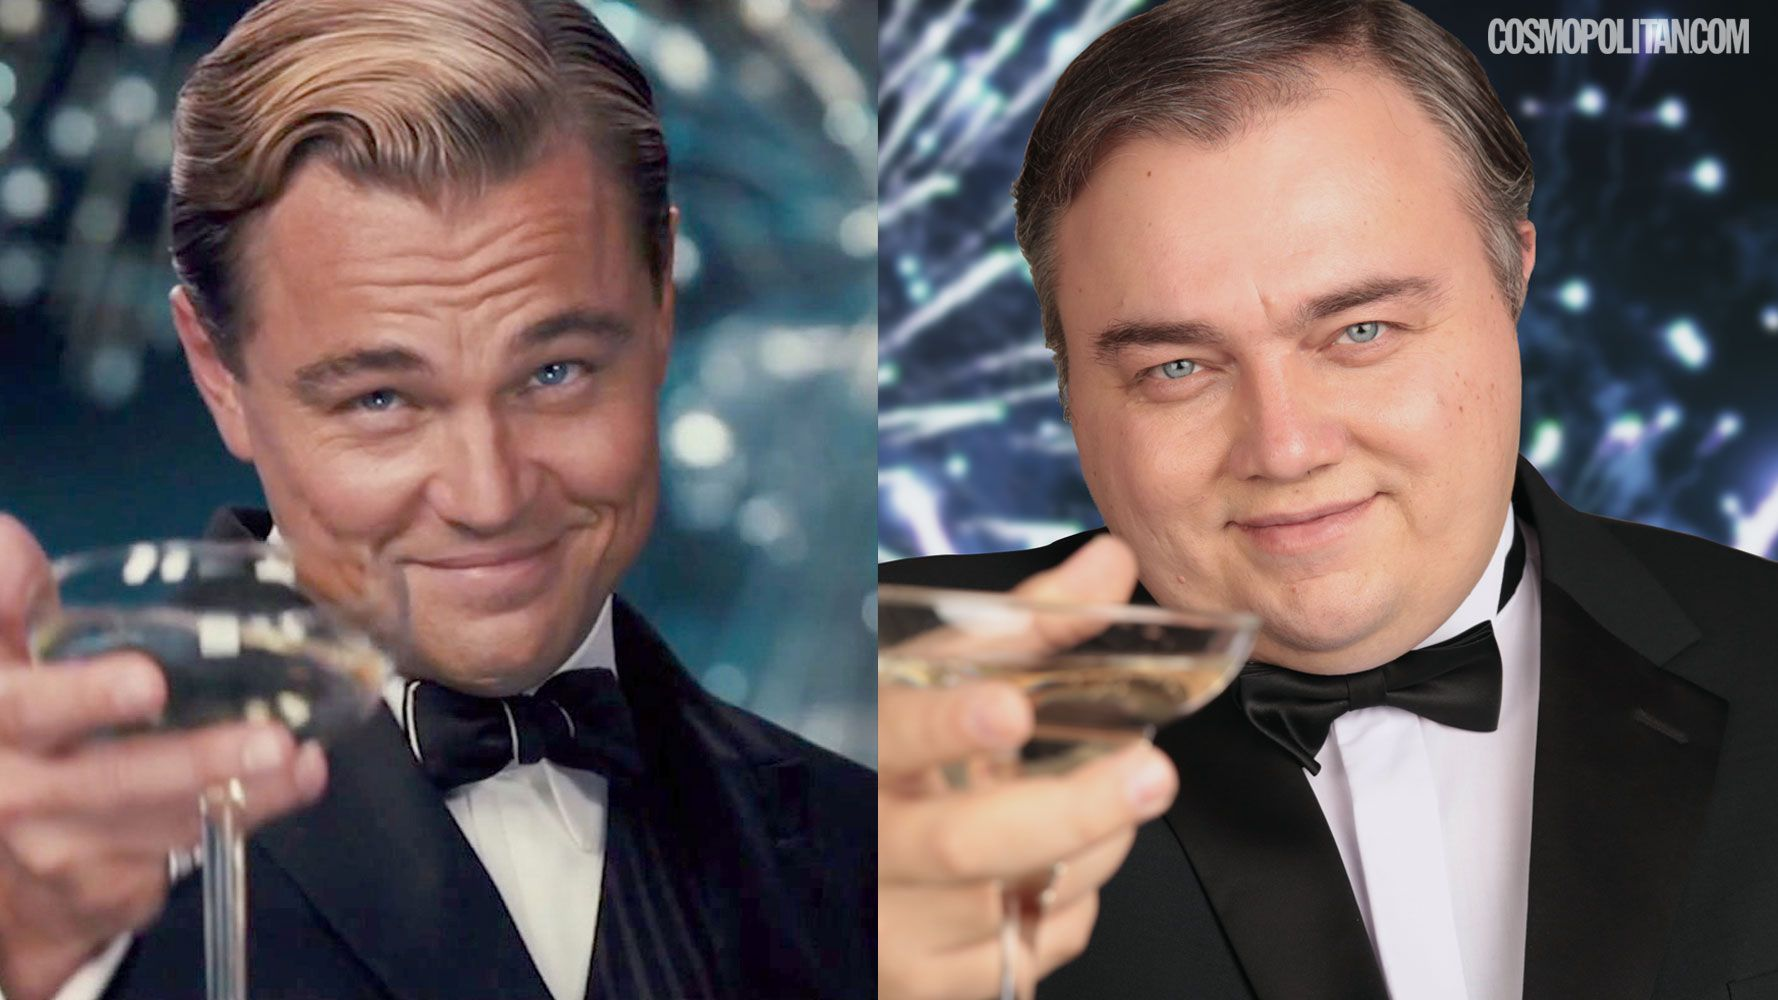 Russian Leo Thinks Its Time for Leonardo DiCaprio to Settle Down